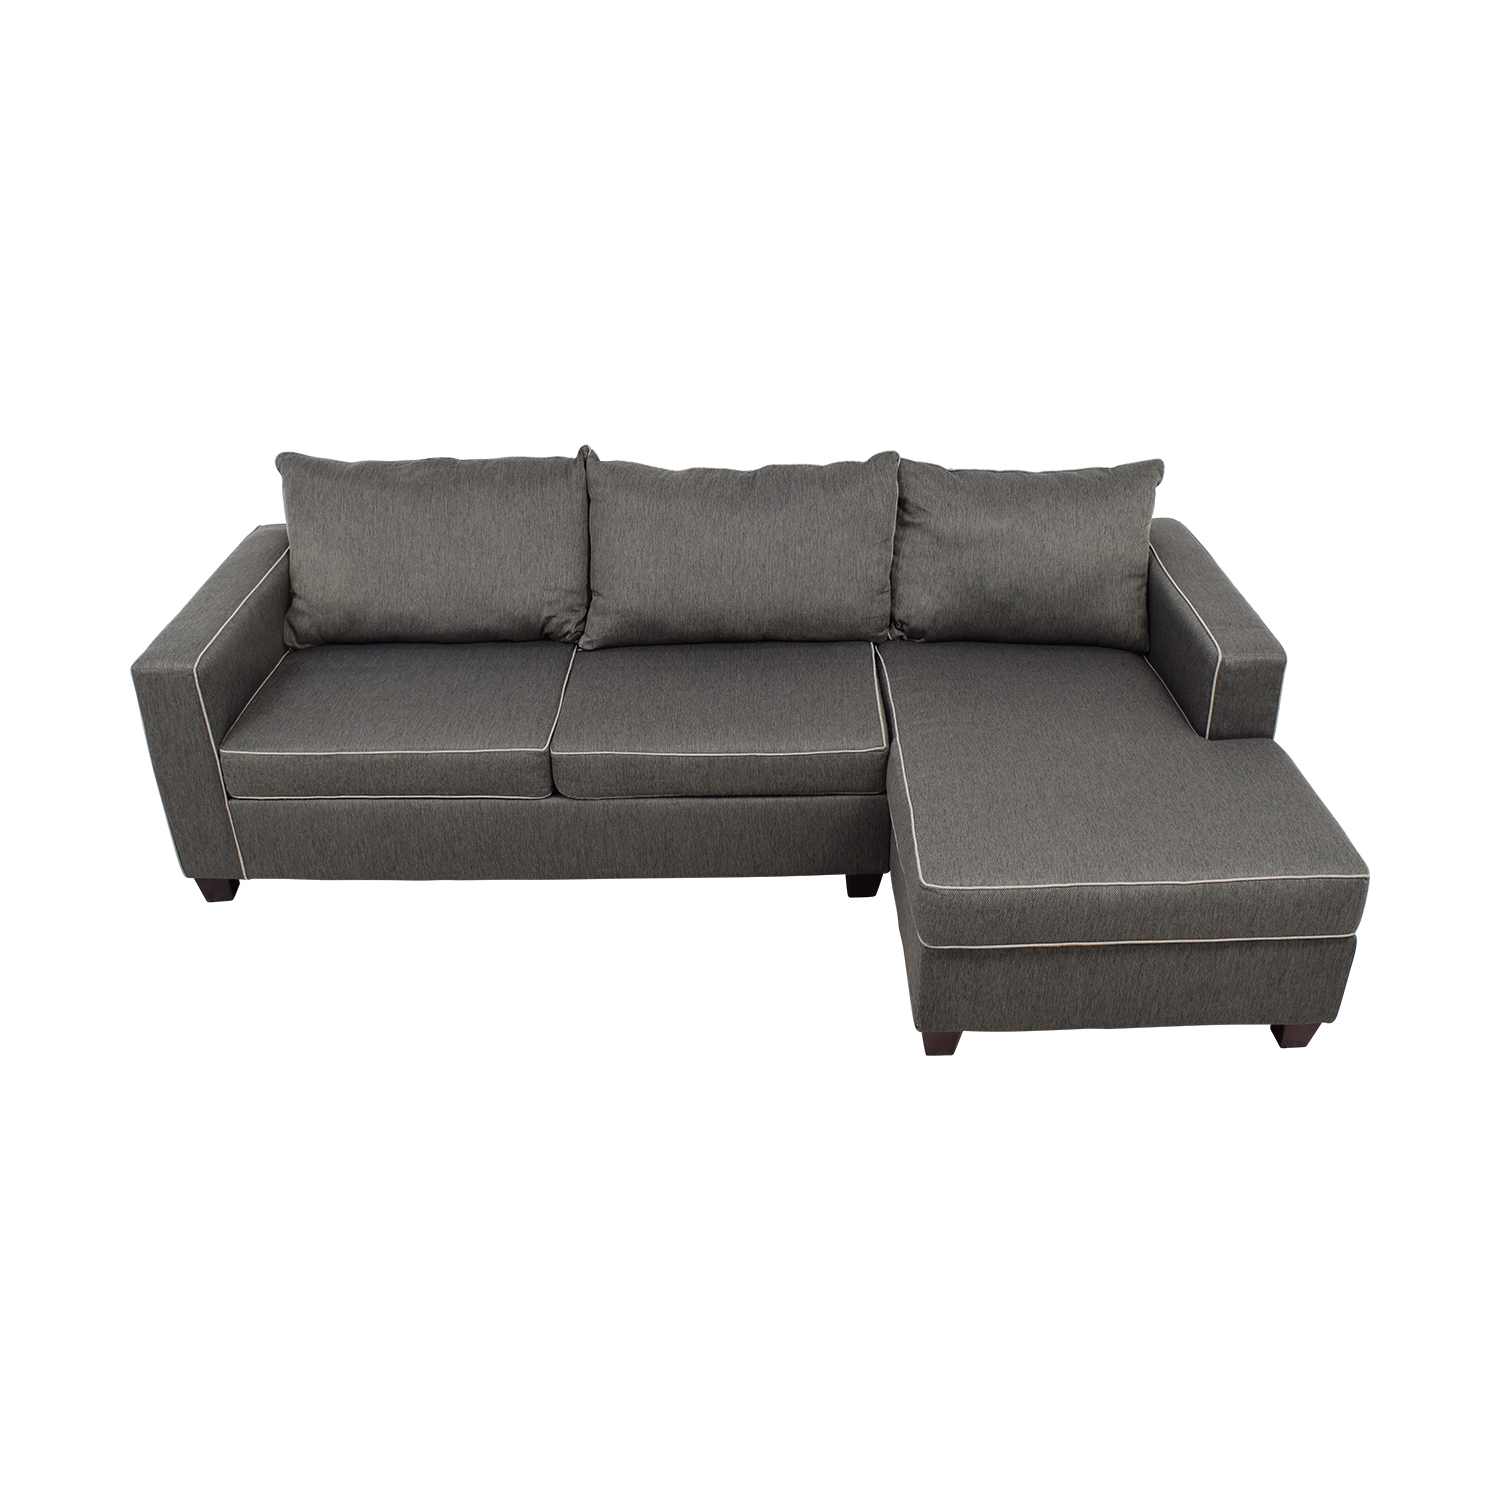 shop Bob's Furniture Alex Grey Chaise Sectional Bob's Furniture Sectionals